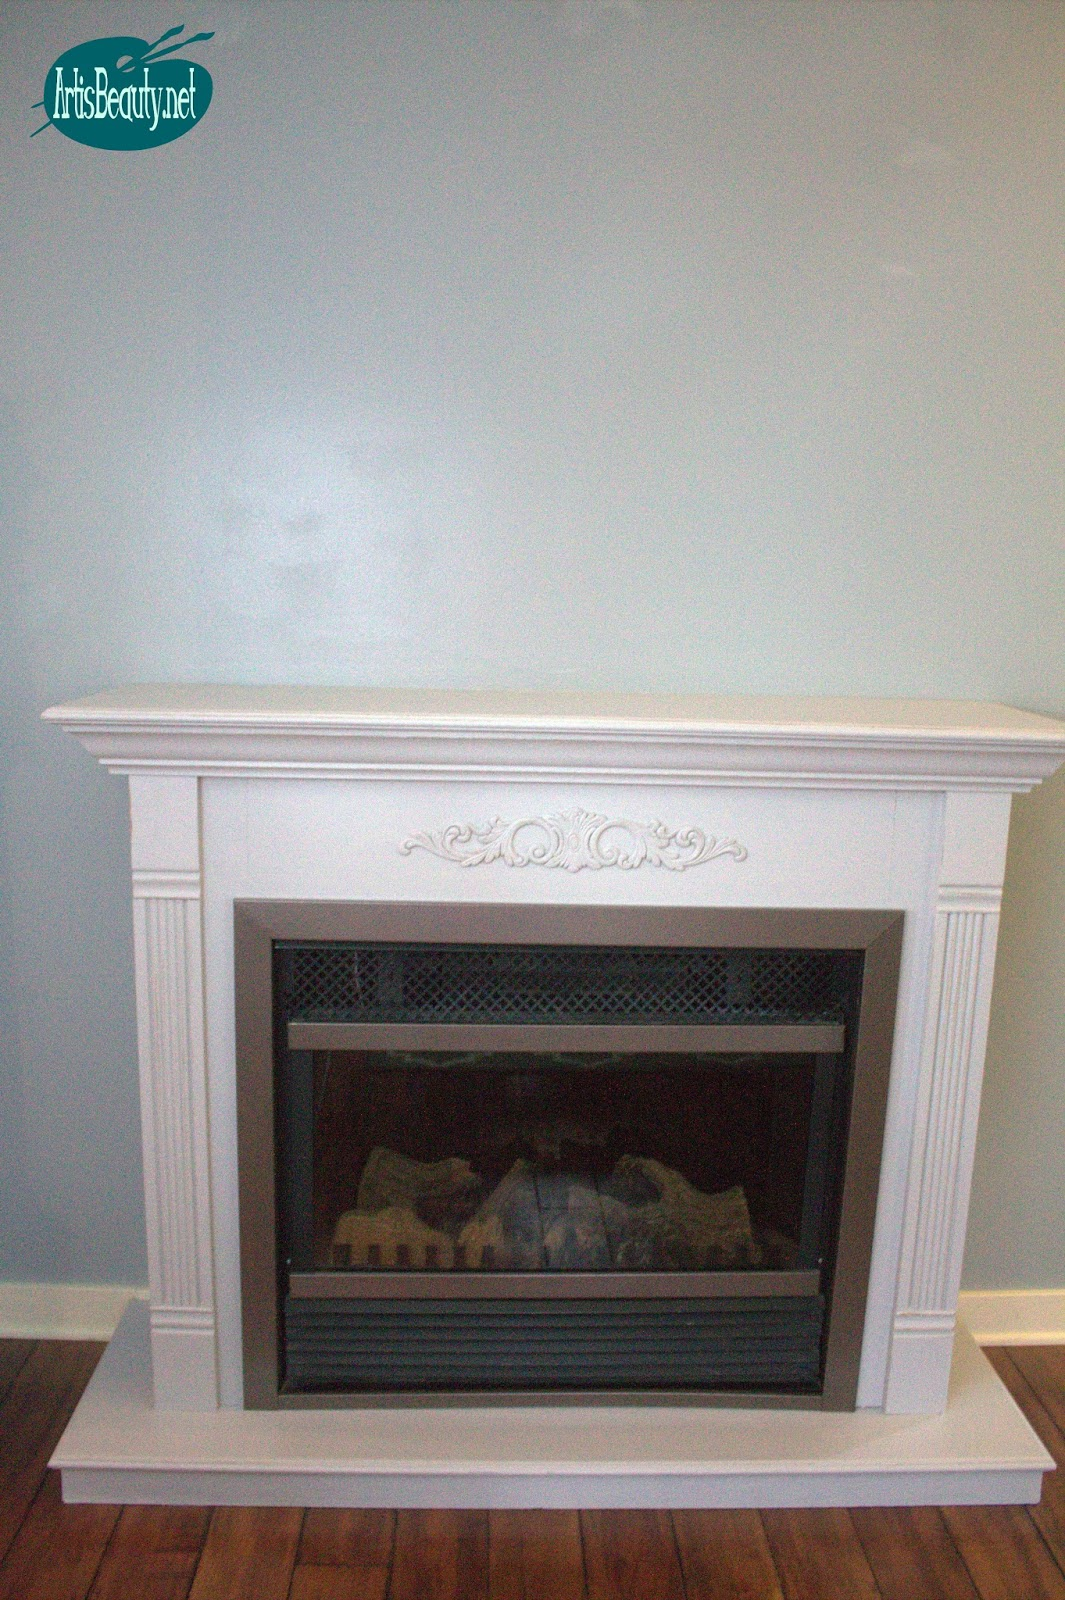 art is beauty: cheap and easy faux shiplap fireplace makeover diy for under $30